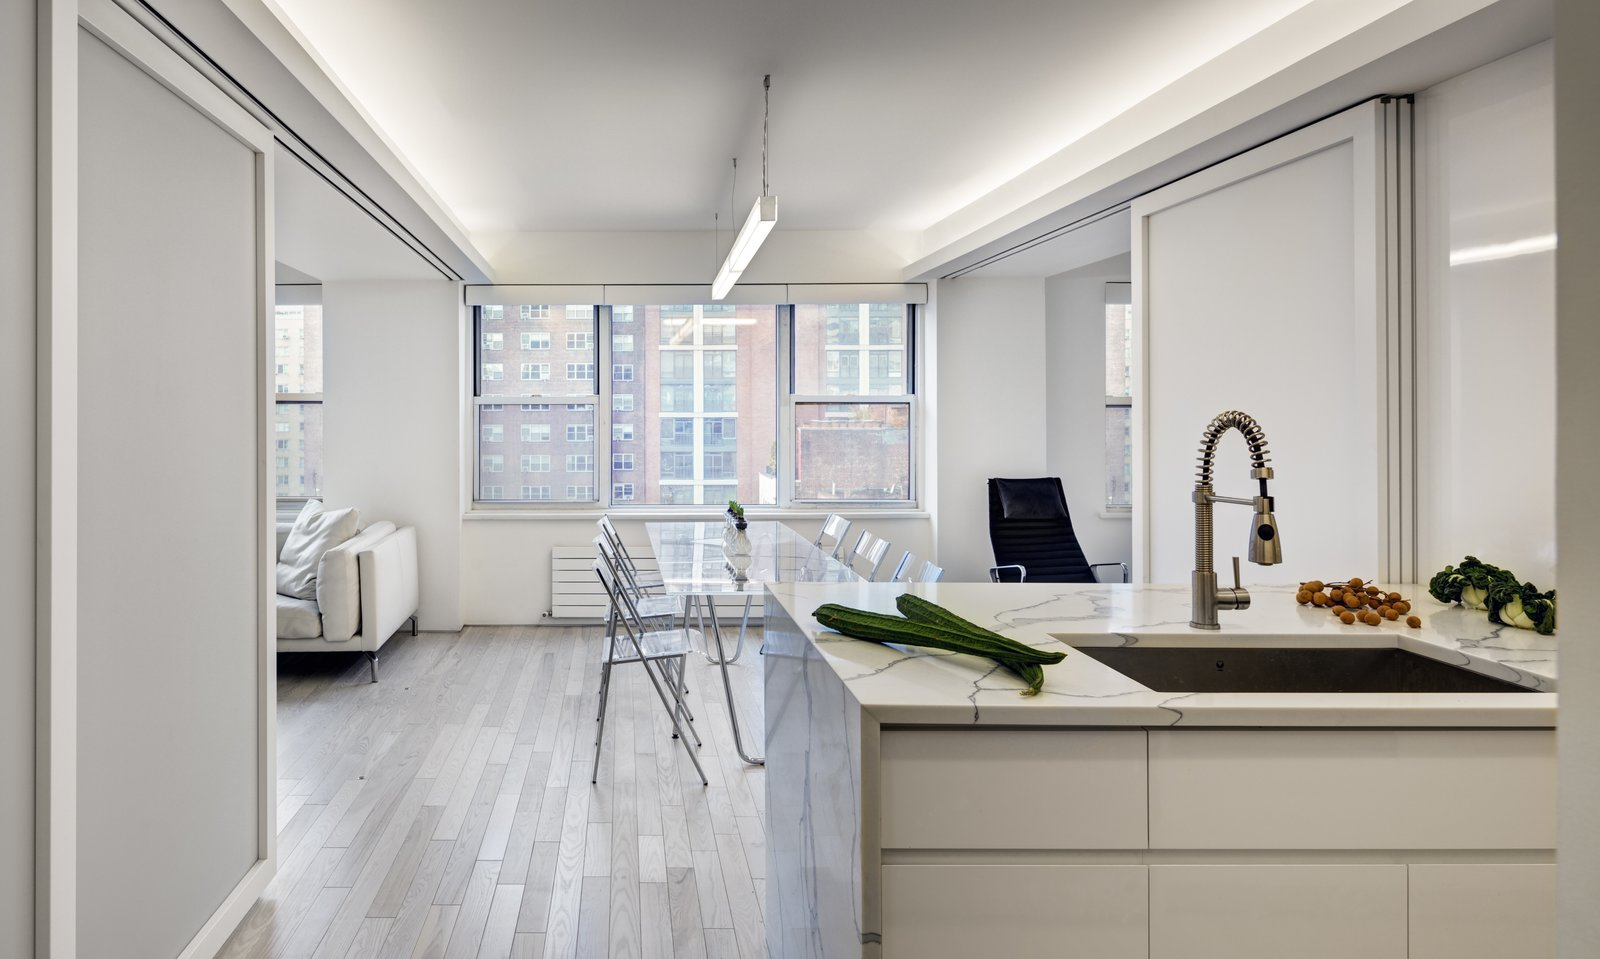 Flex Space: View of Open kitchen and island counter (Sliding panels in open position) Tagged: Kitchen, Ceiling Lighting, White Cabinet, Pendant Lighting, Light Hardwood Floor, Engineered Quartz Counter, and Undermount Sink.  Studio Combination, Murray Hill, NY by Lilian H. Weinreich AIA